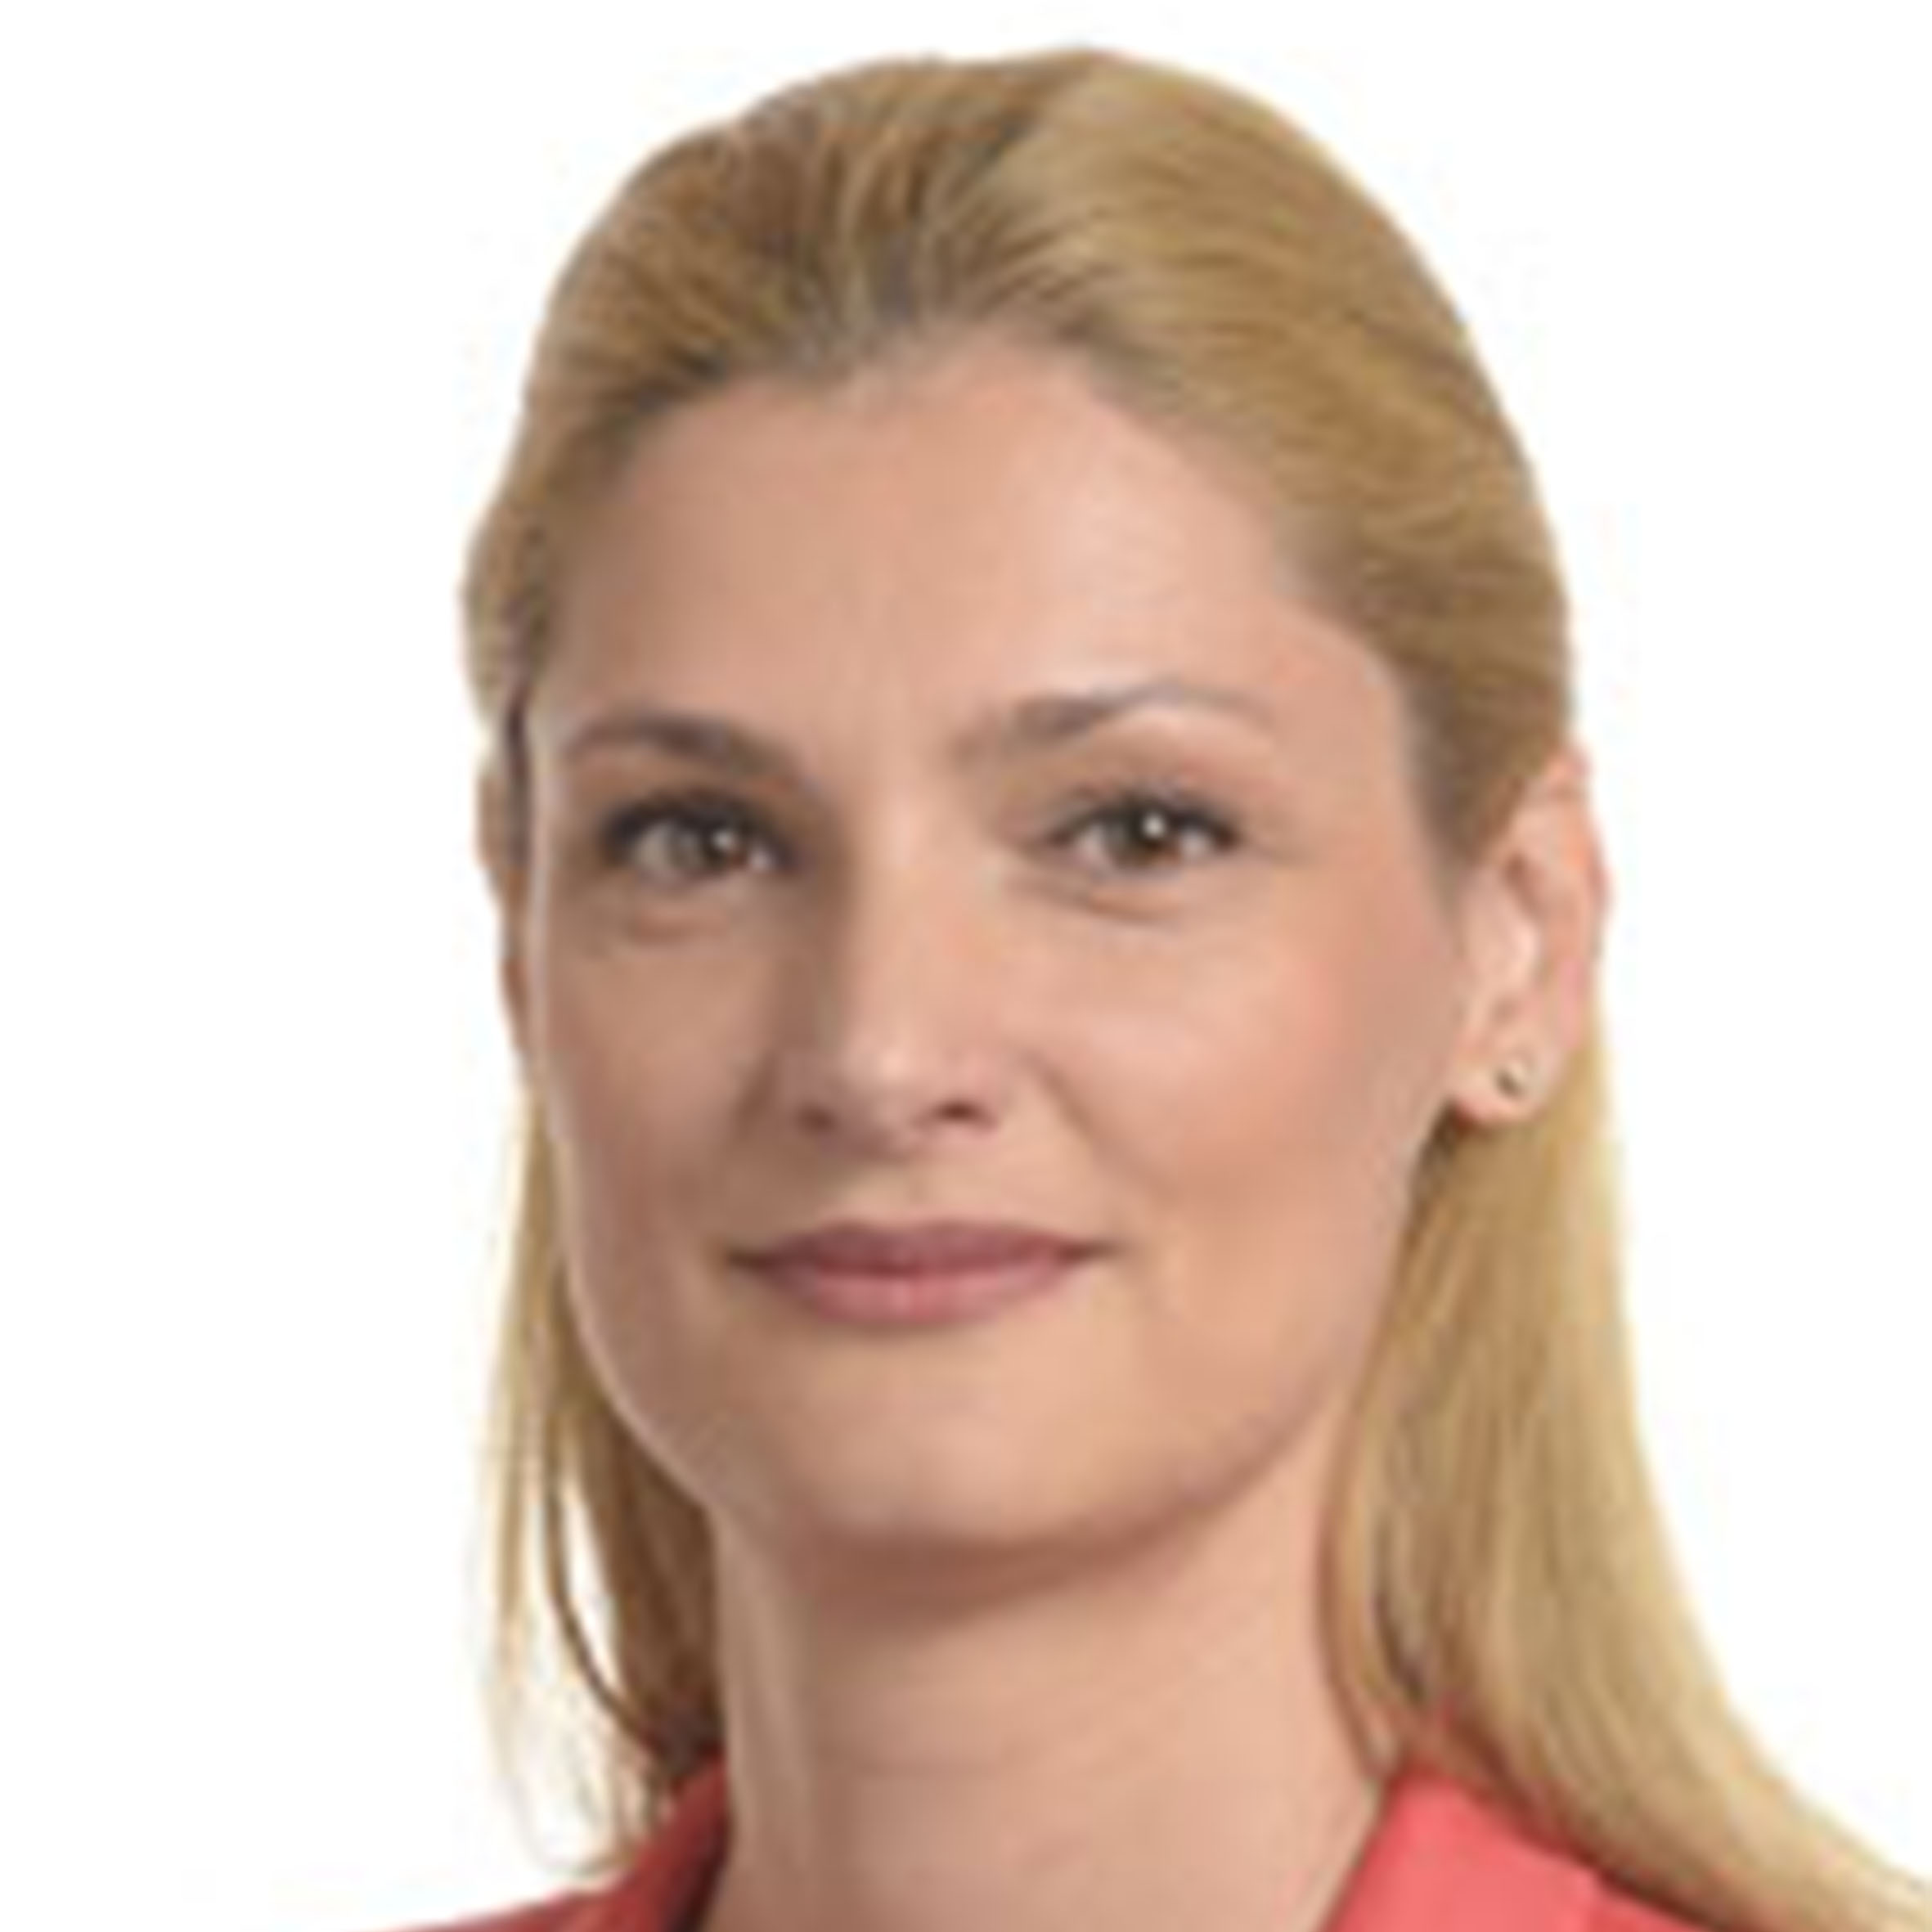 Ramona Mănescu, Member of the European Parliament